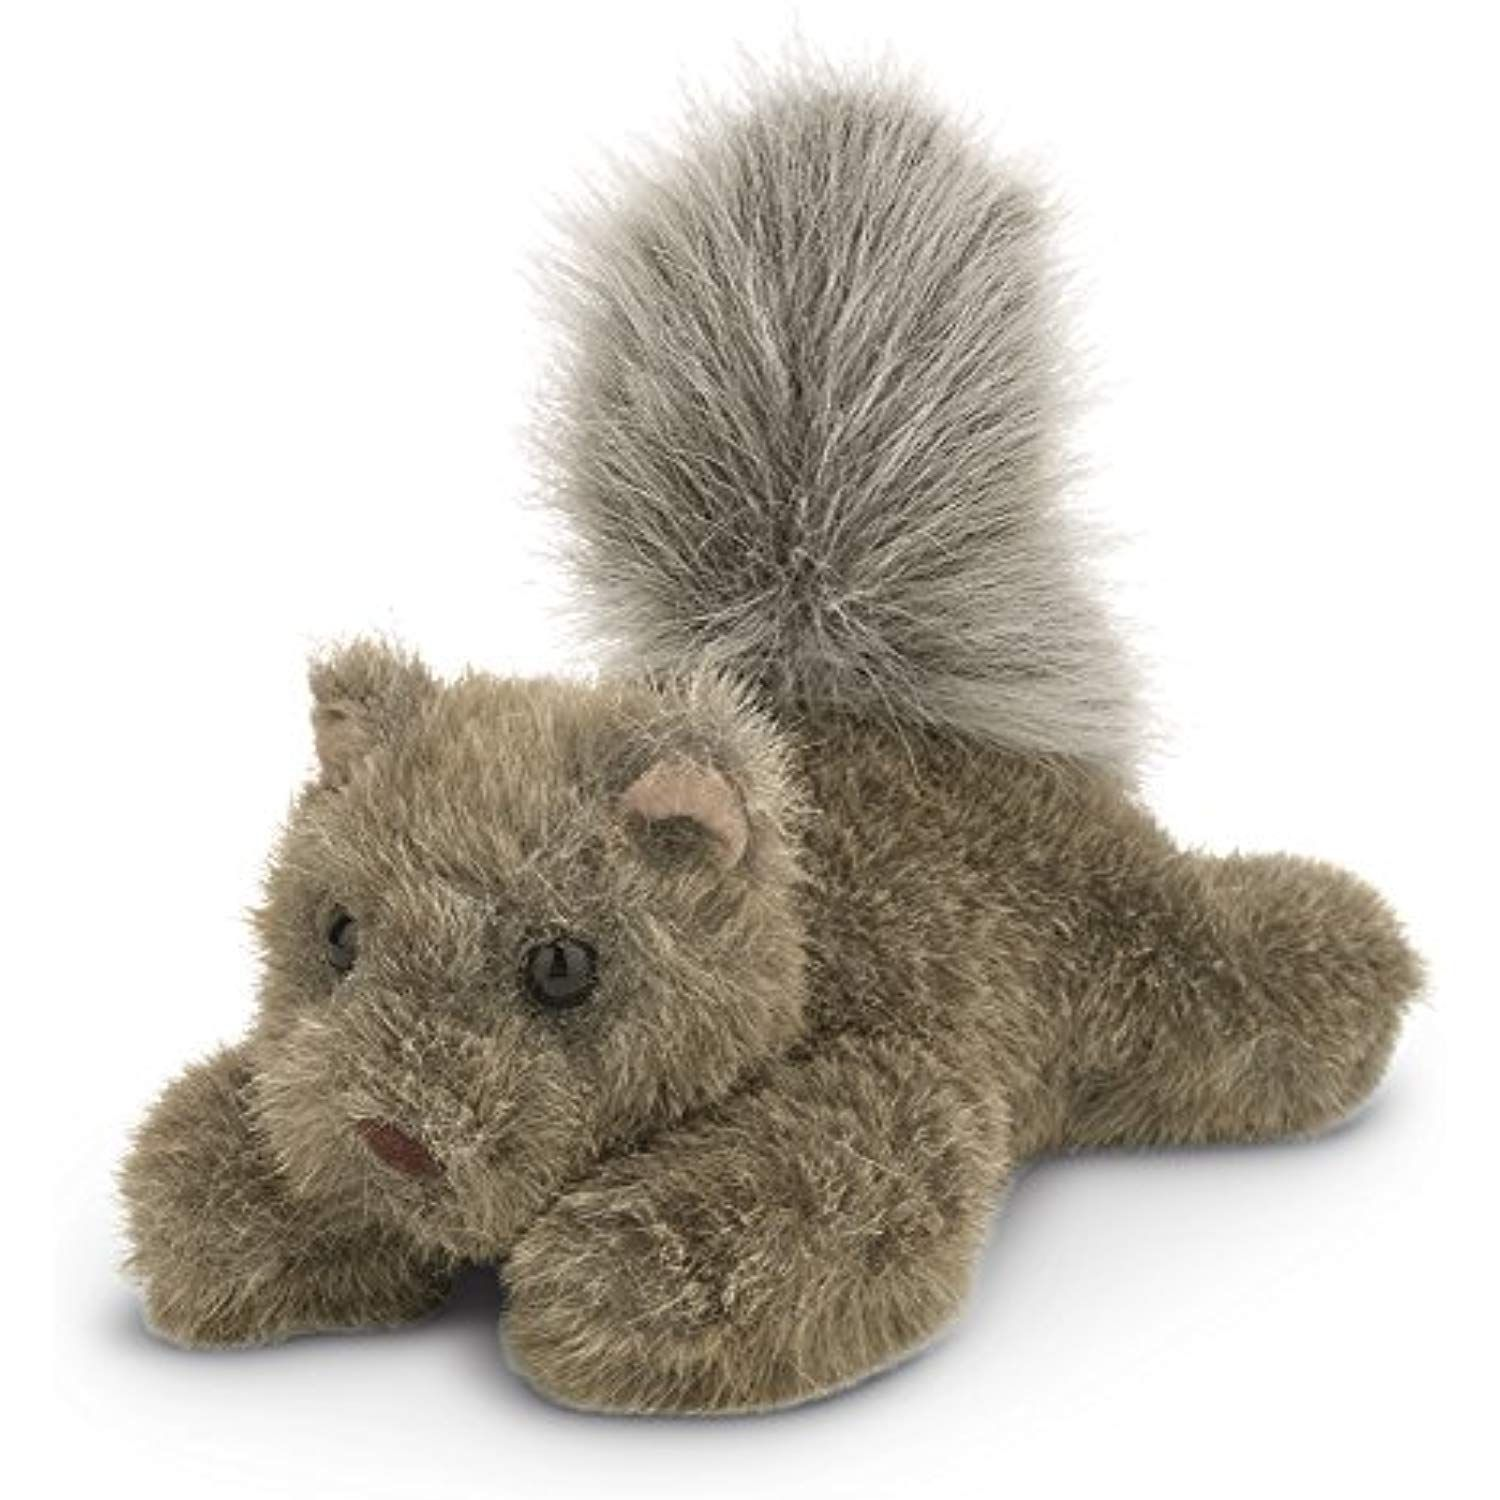 Bearington Chester P Nut Plush Stuffed Animal Squirrel 8 Check Out This Great Product This Is An Affiliate Link Plush Stuffed Animals Animals Squirrel [ 1500 x 1500 Pixel ]